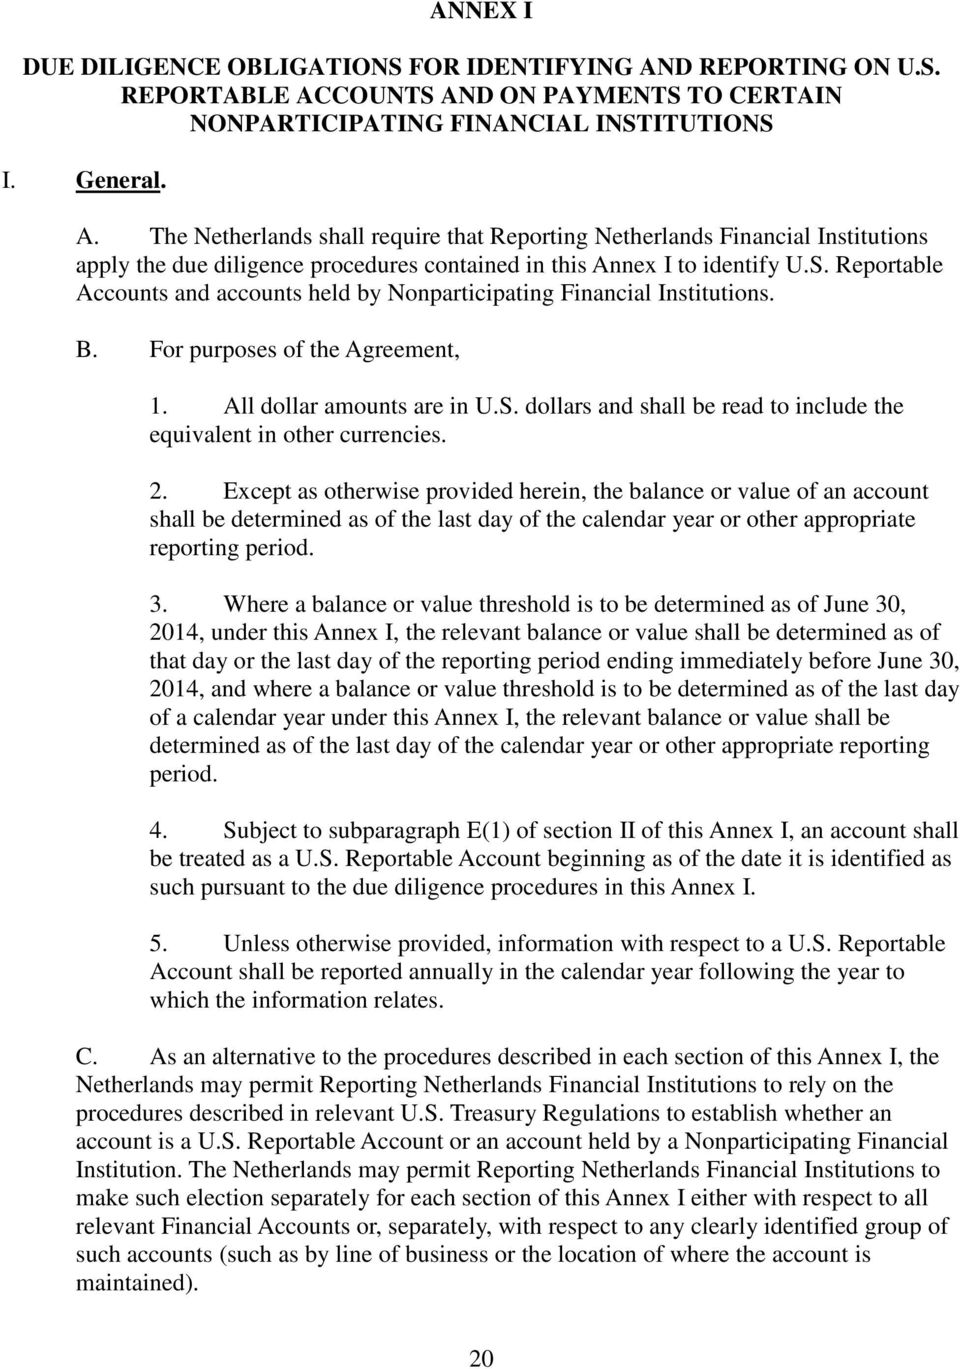 S. Reportable Accounts and accounts held by Nonparticipating Financial Institutions. B. For purposes of the Agreement, 1. All dollar amounts are in U.S. dollars and shall be read to include the equivalent in other currencies.